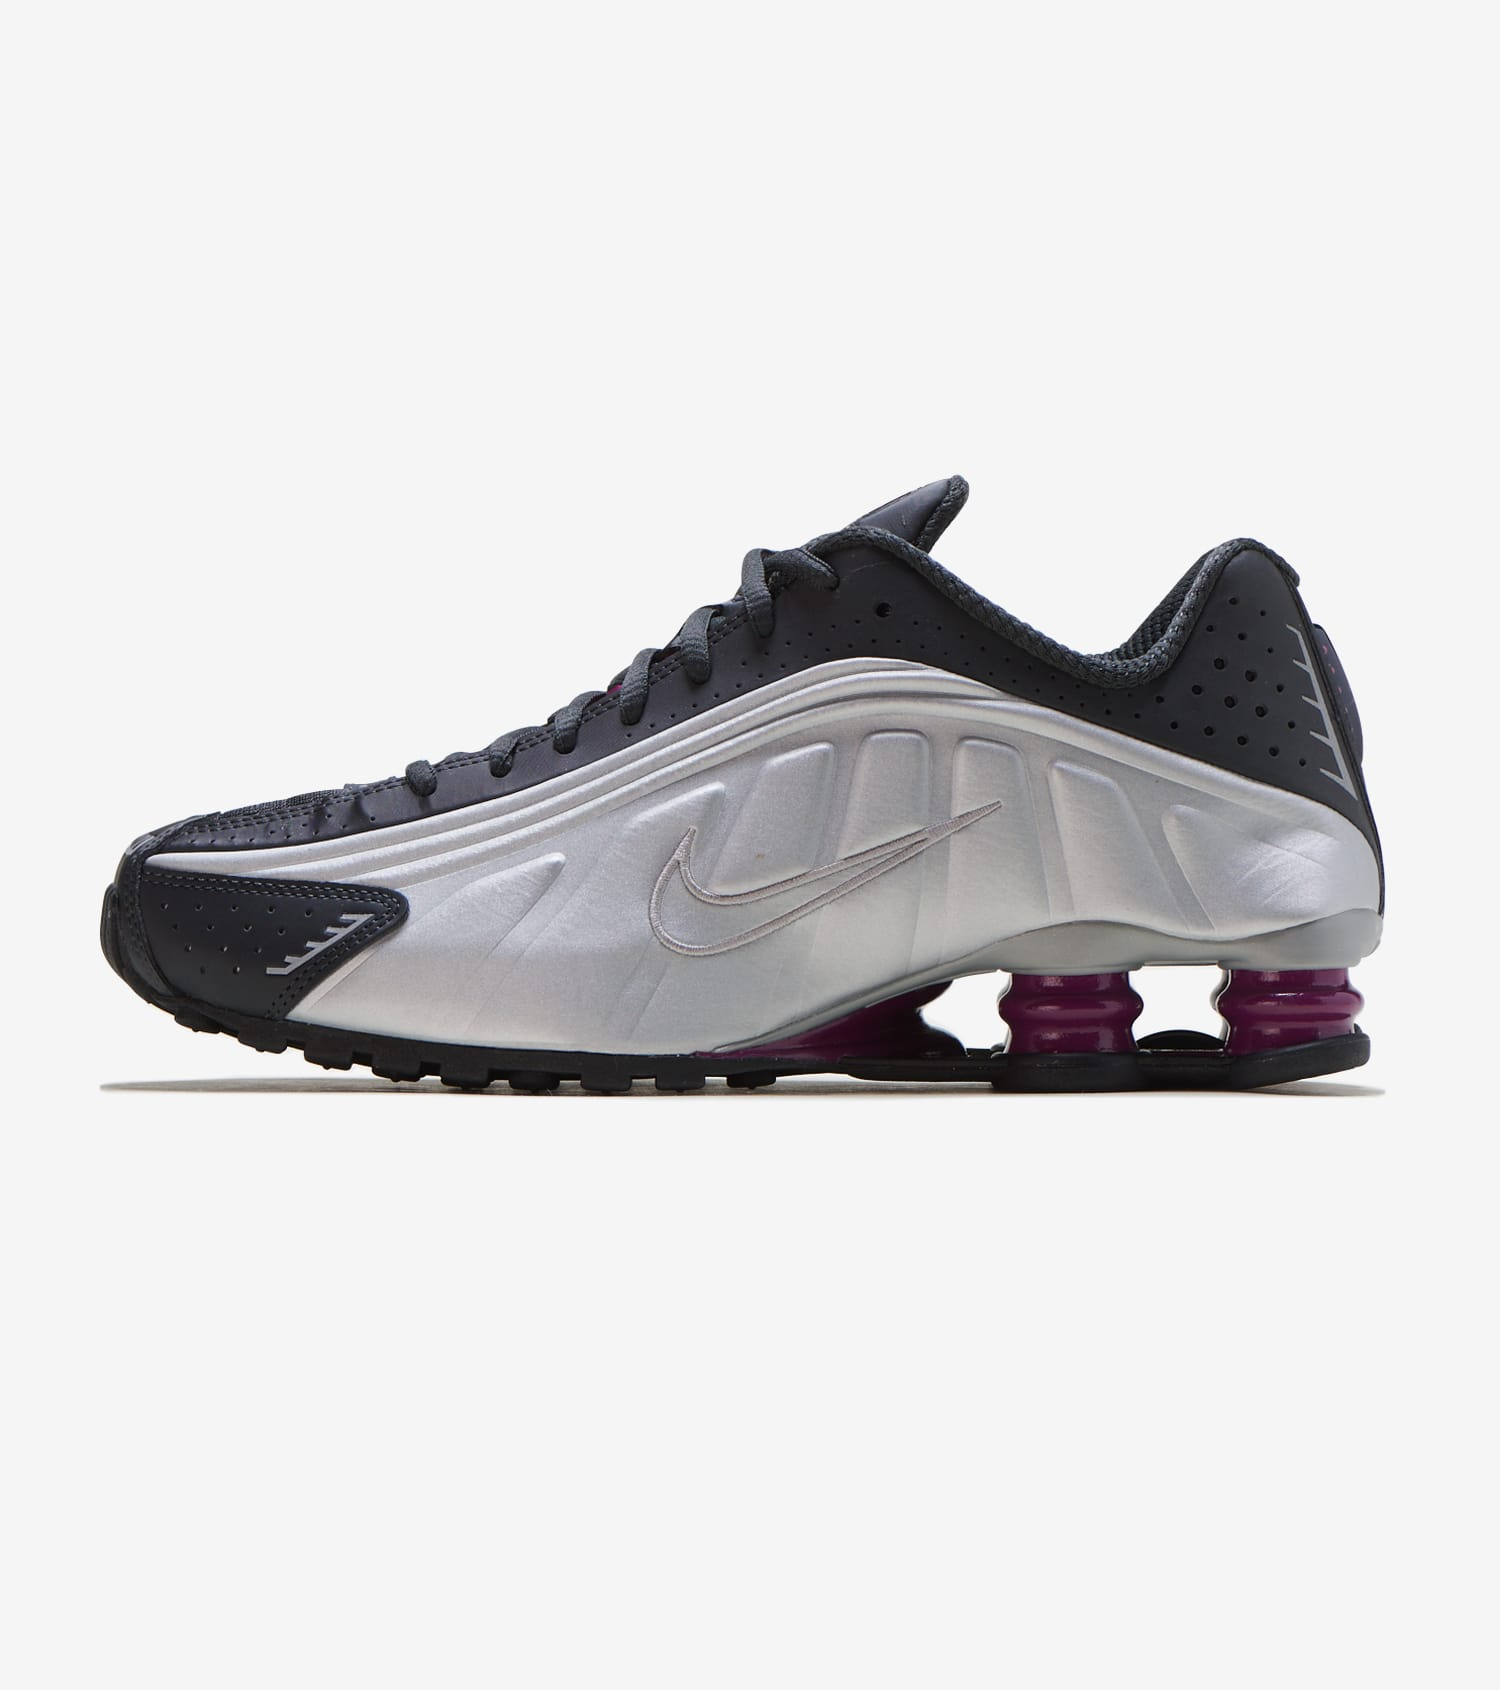 hot products retail prices 2018 shoes Shox R4